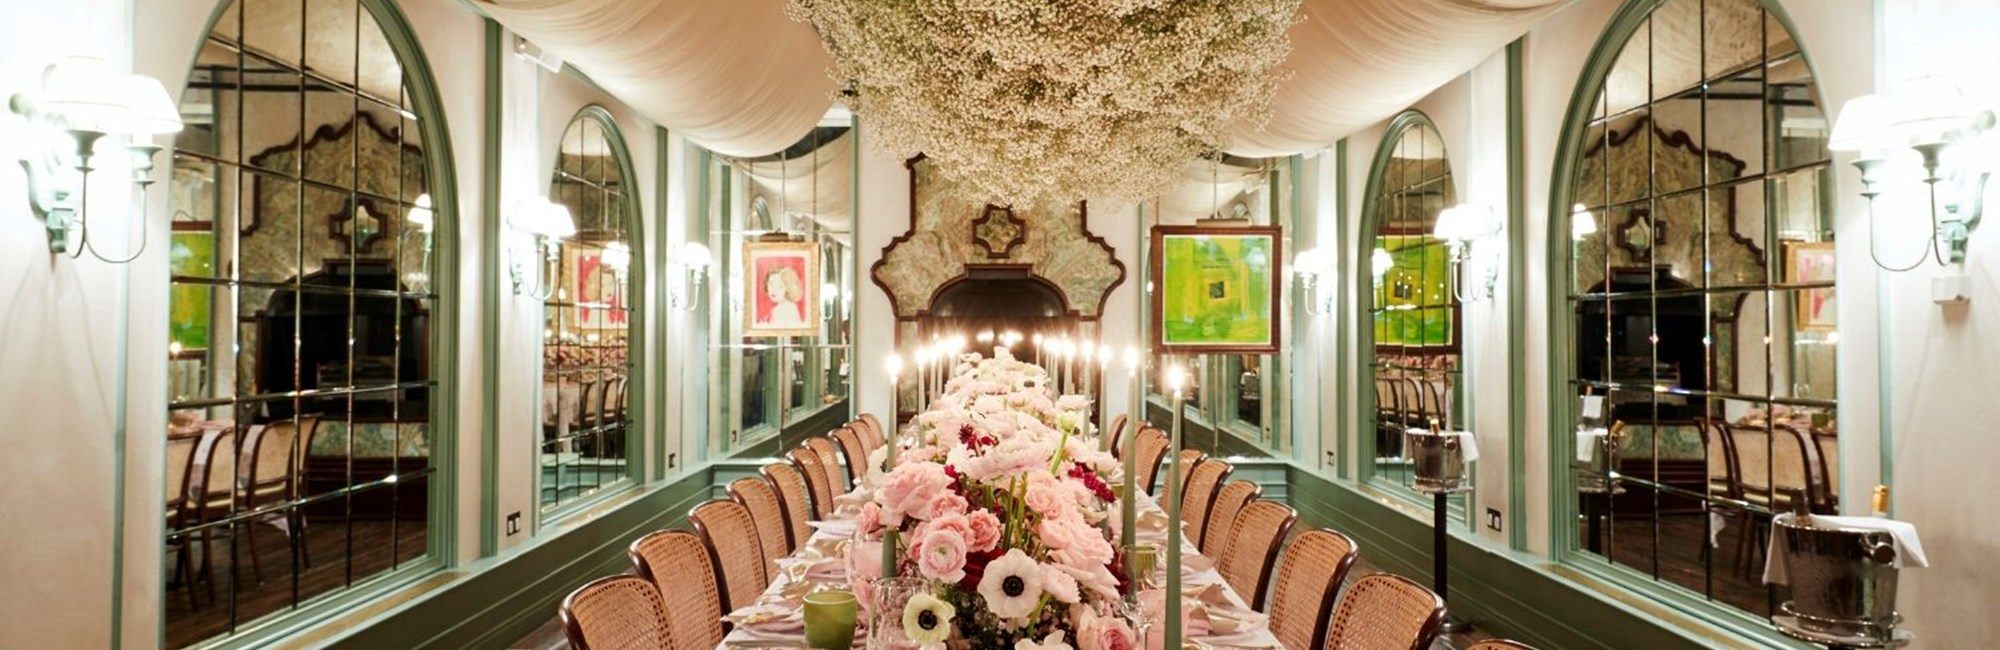 Private dining event in Daphne's Conservatory in Chelsea, London